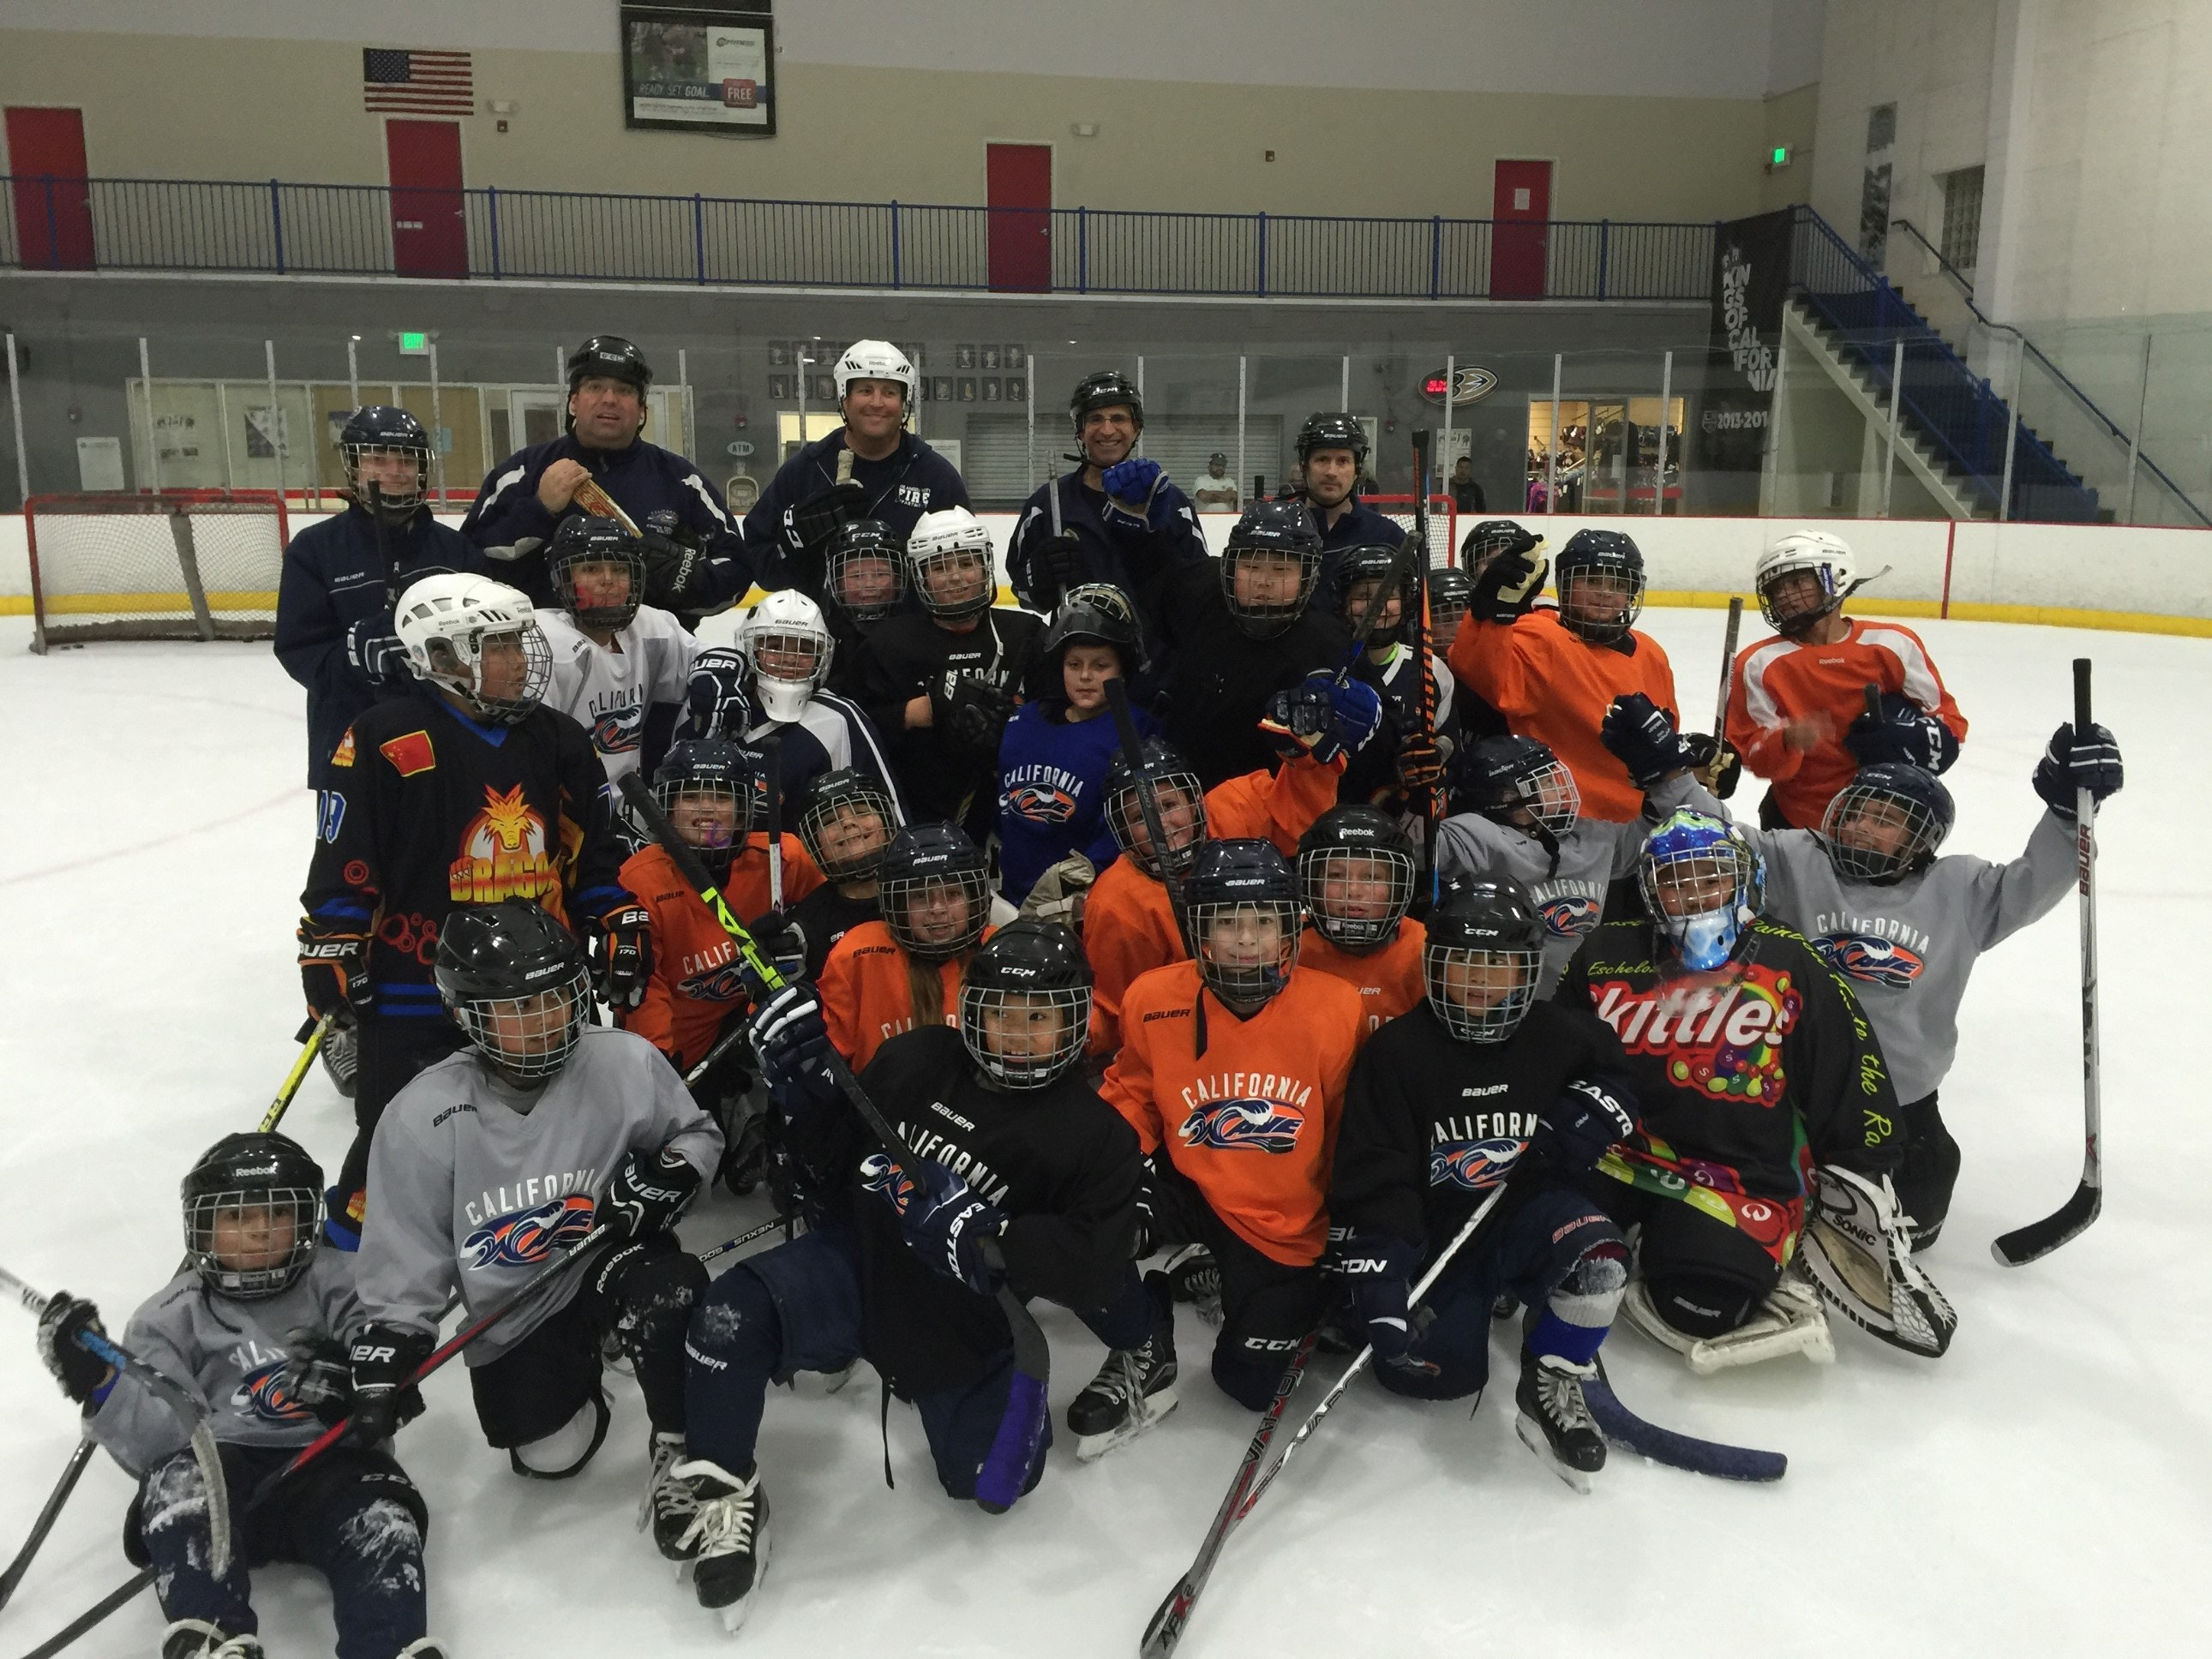 California Wave (Ontario) Squirt B Team